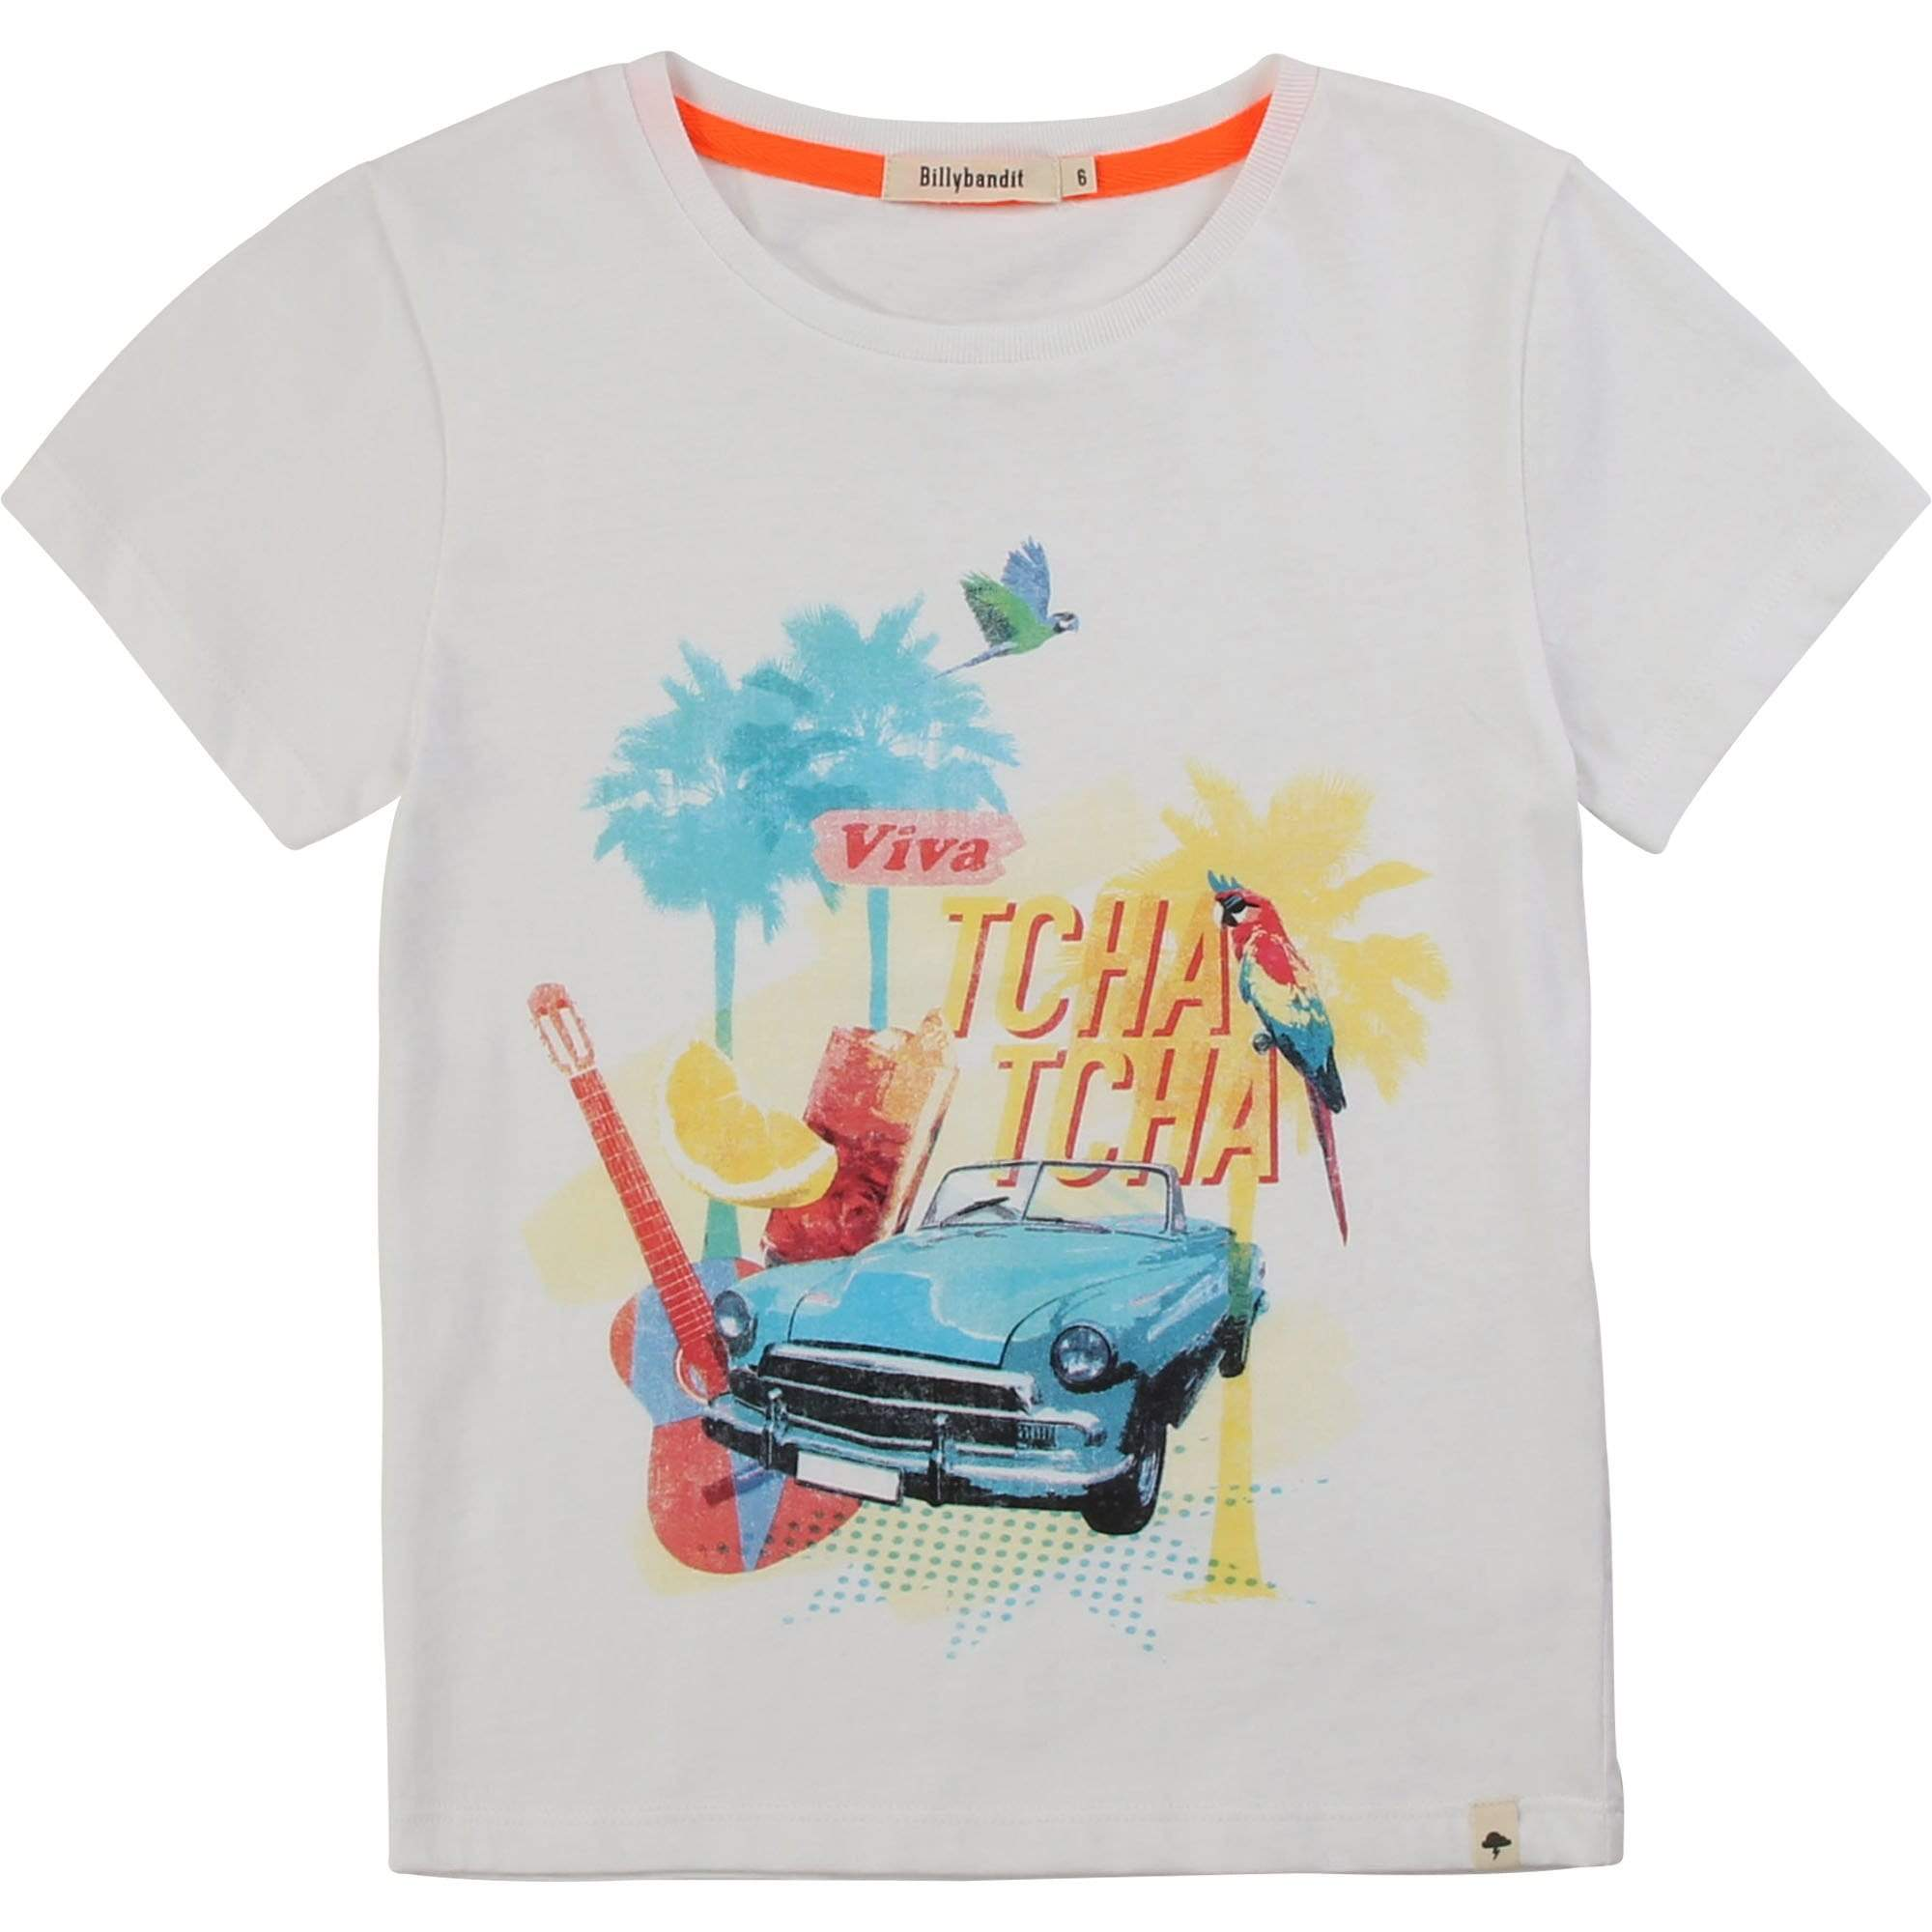 BillyBandit Chandails T-shirt tropical blanc White tropical t-shirt